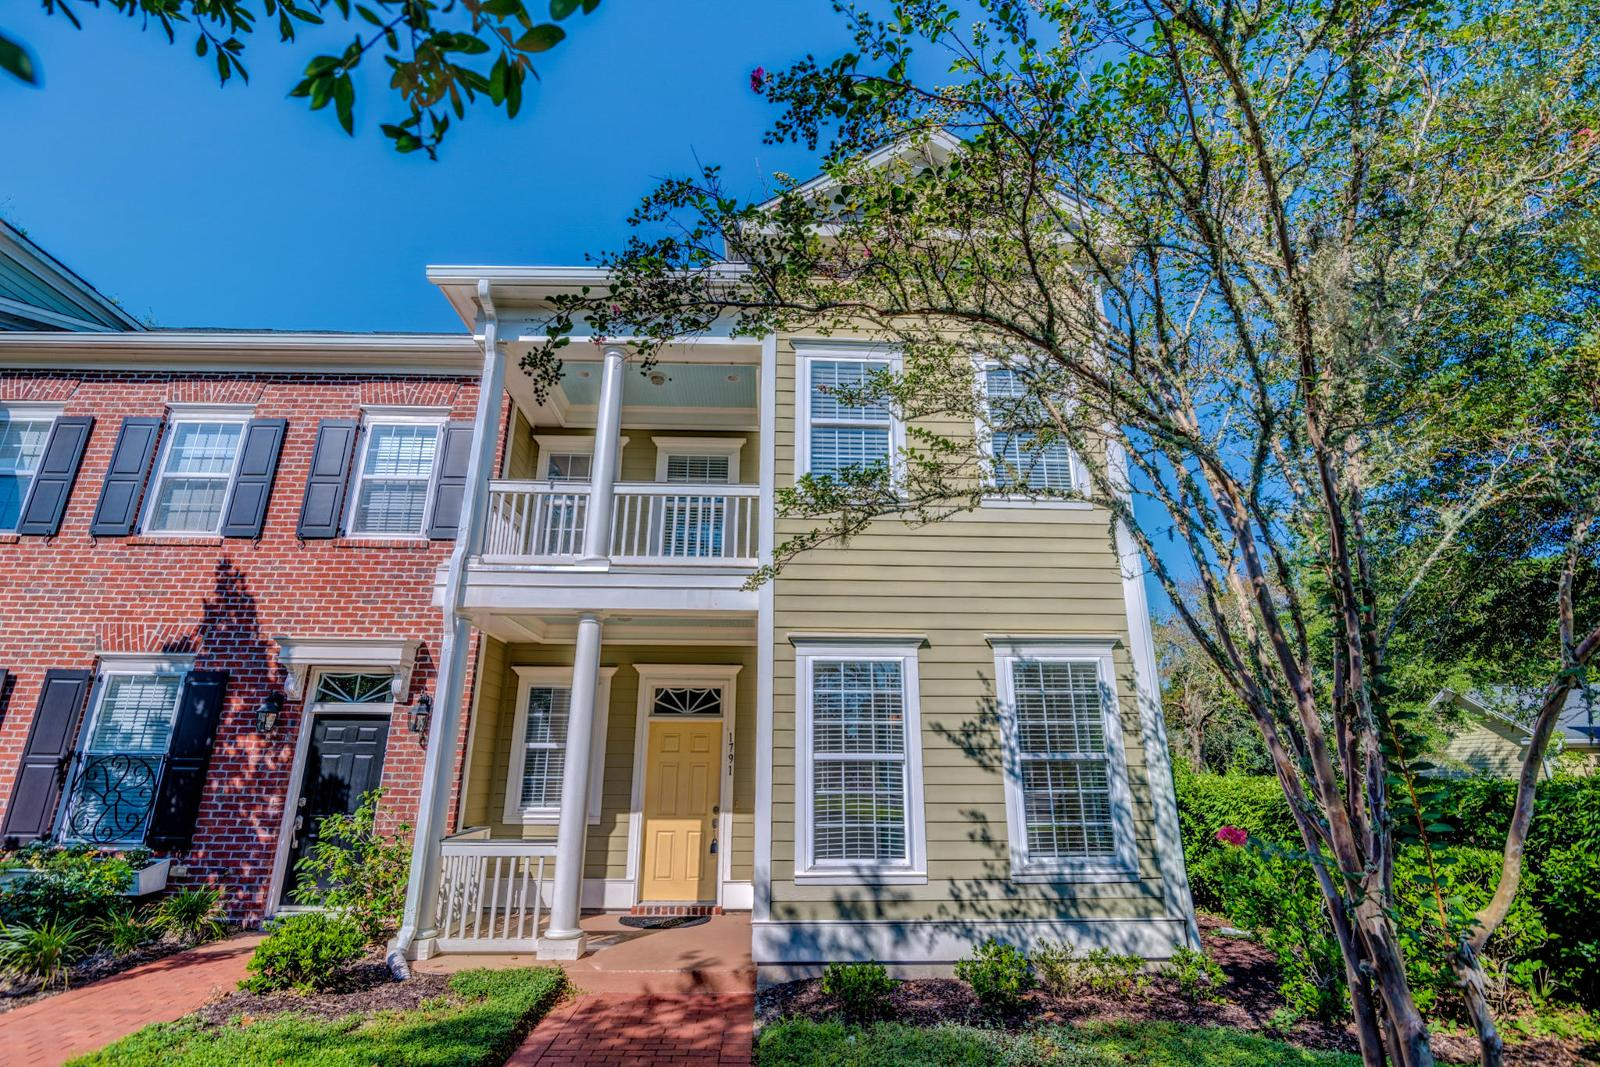 Local Tennyson At Park West Sc Real Estate Listings And Homes For 33976 Fuel Filter Sale Bhgre